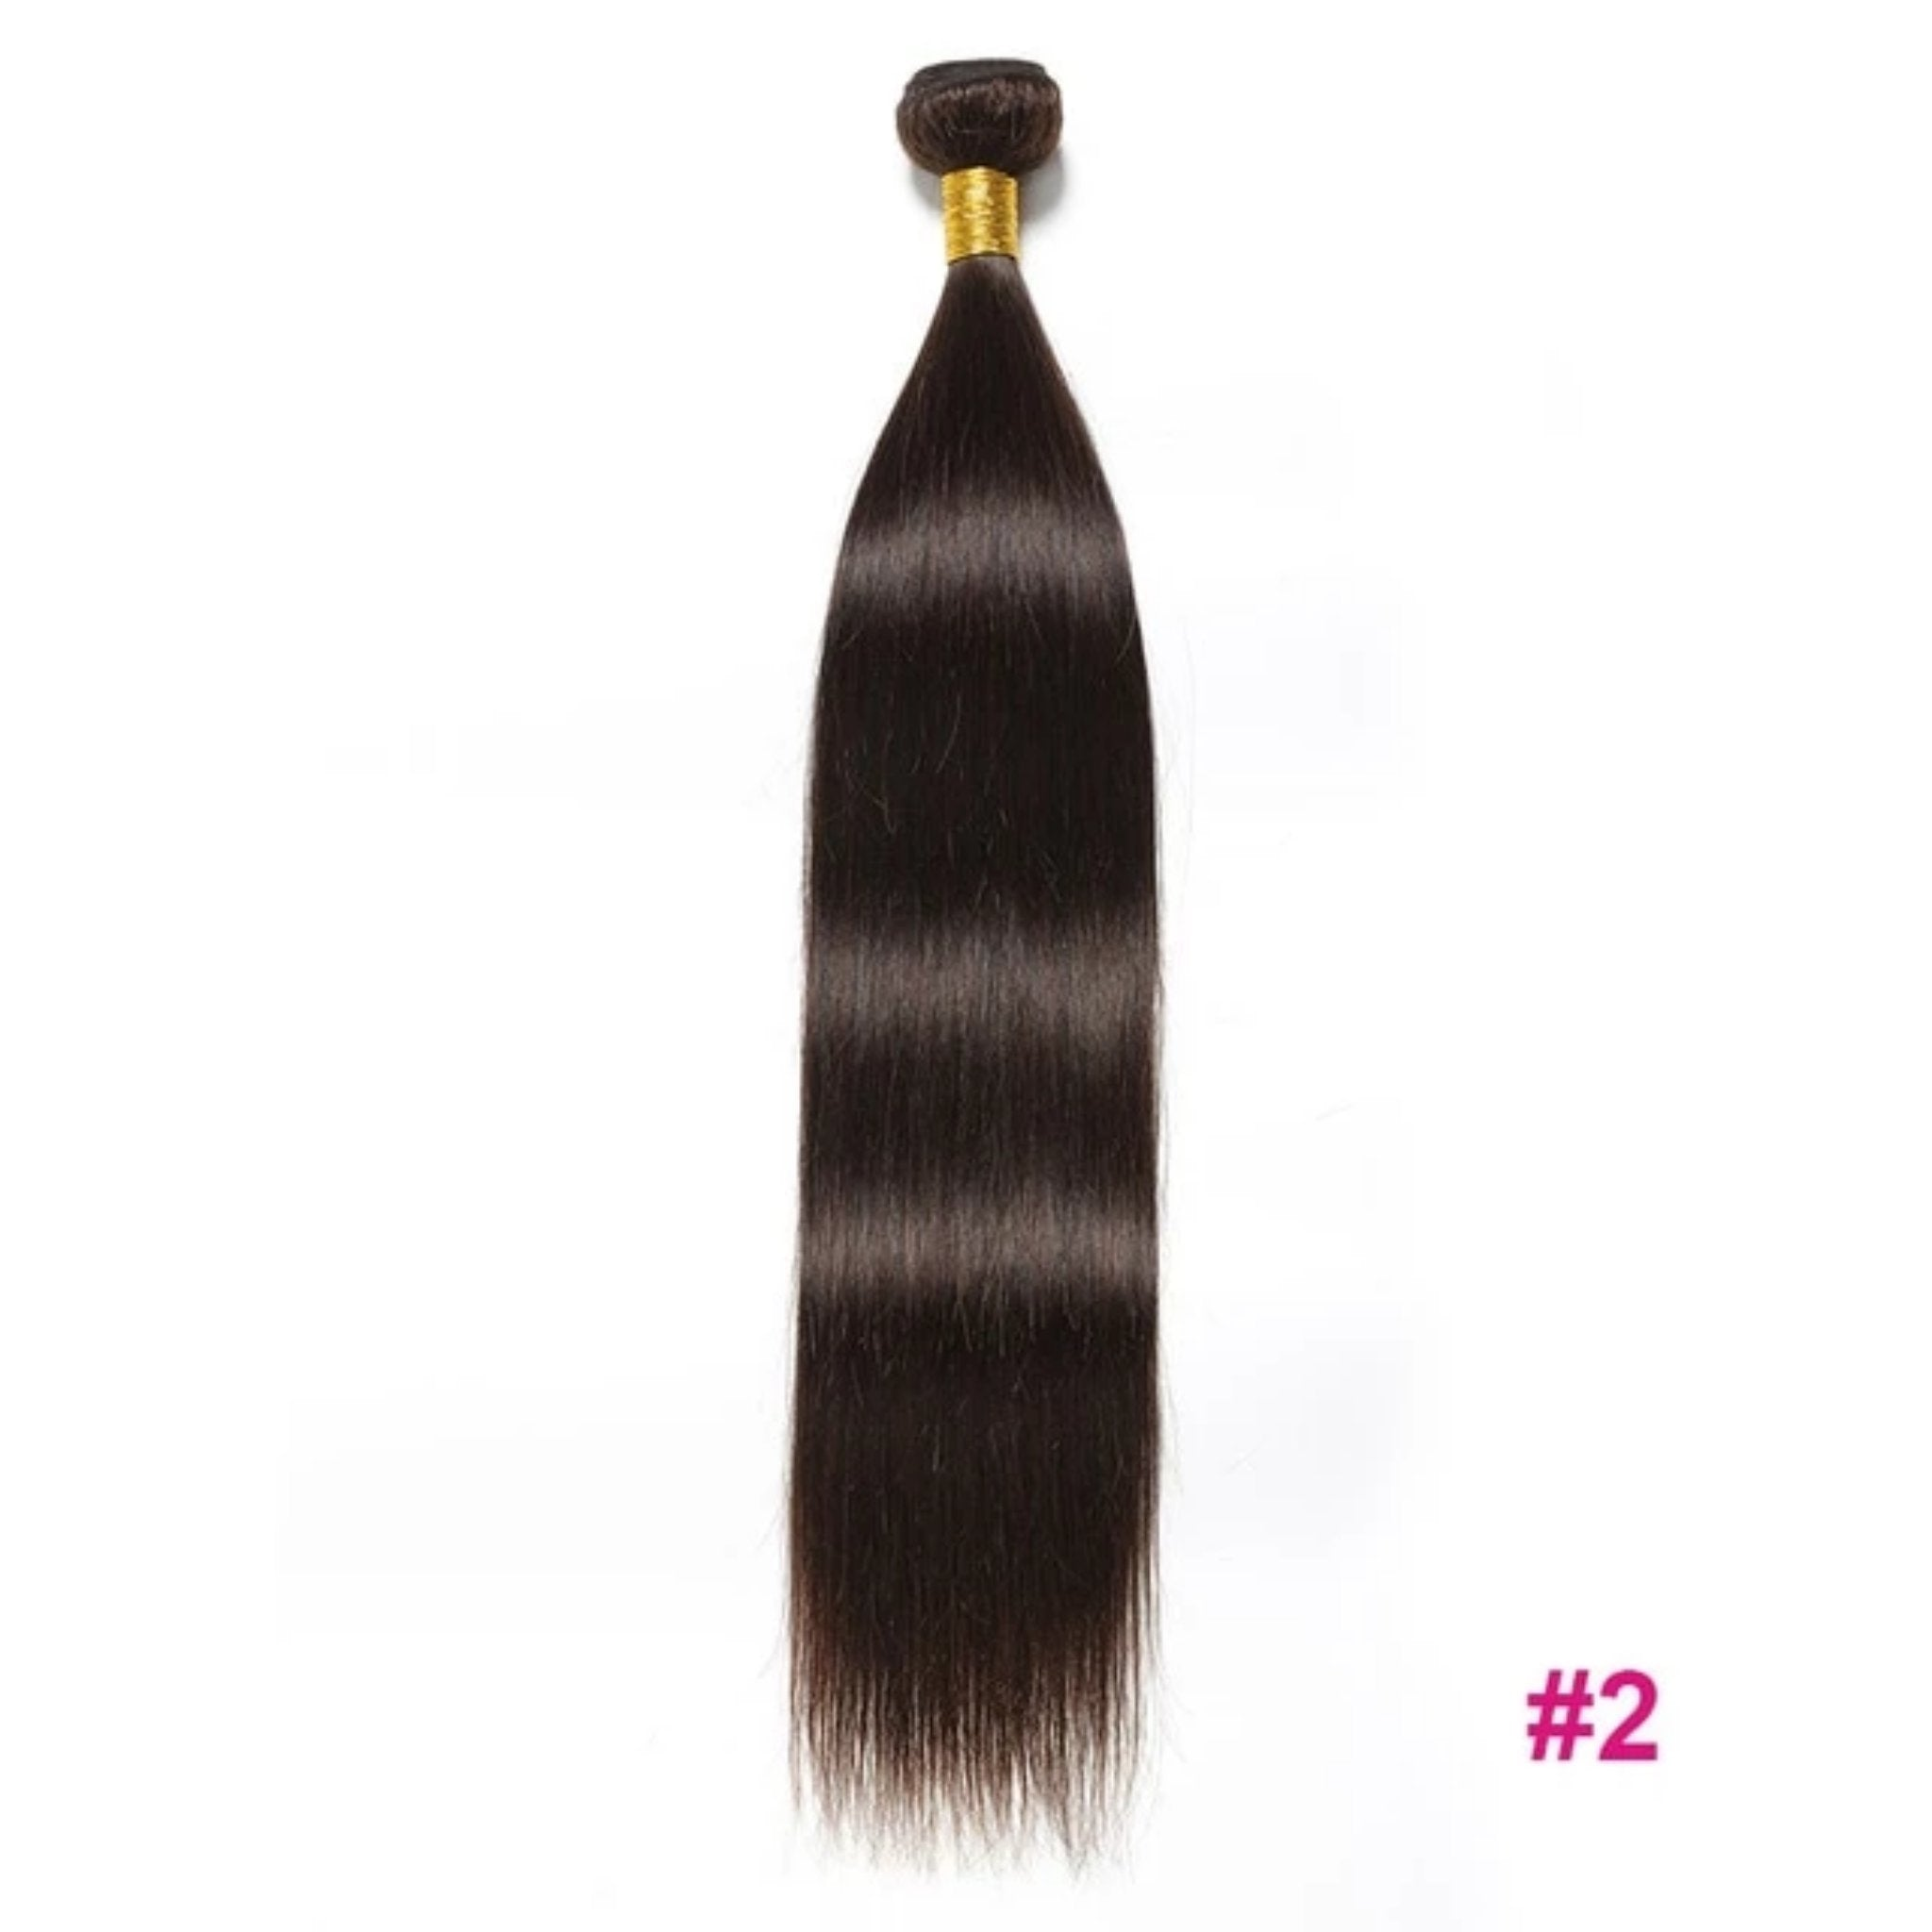 Brazilian Weavy Bundles Hair Extensions - Fresh Hair Extensions and Accessories